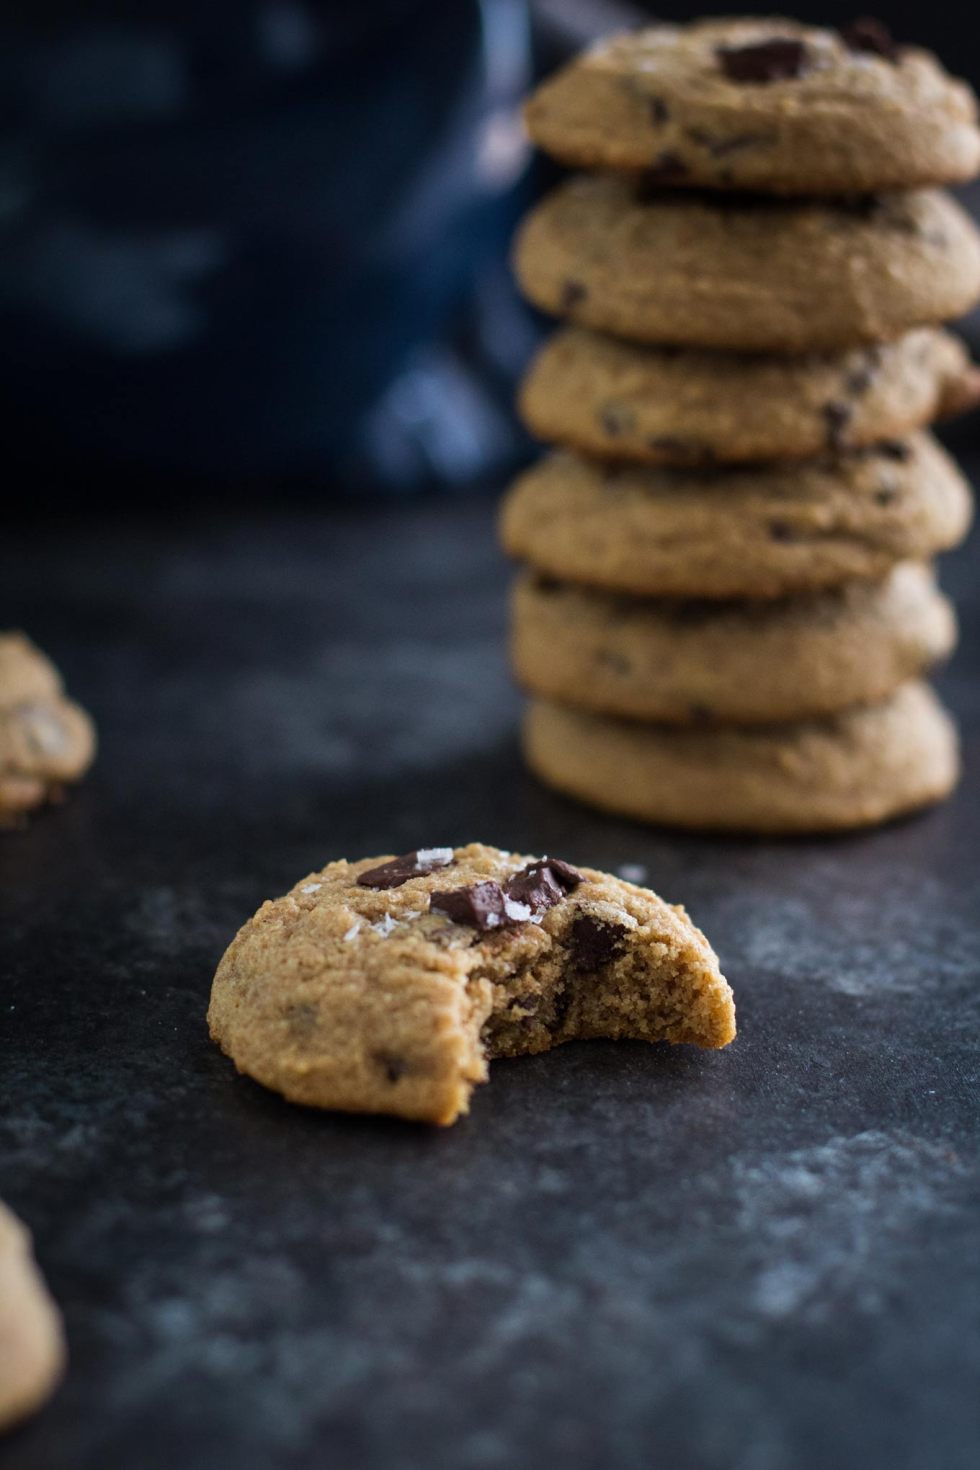 Close-up of whole wheat cookie with a bite out of it and a stack of cookies behind it